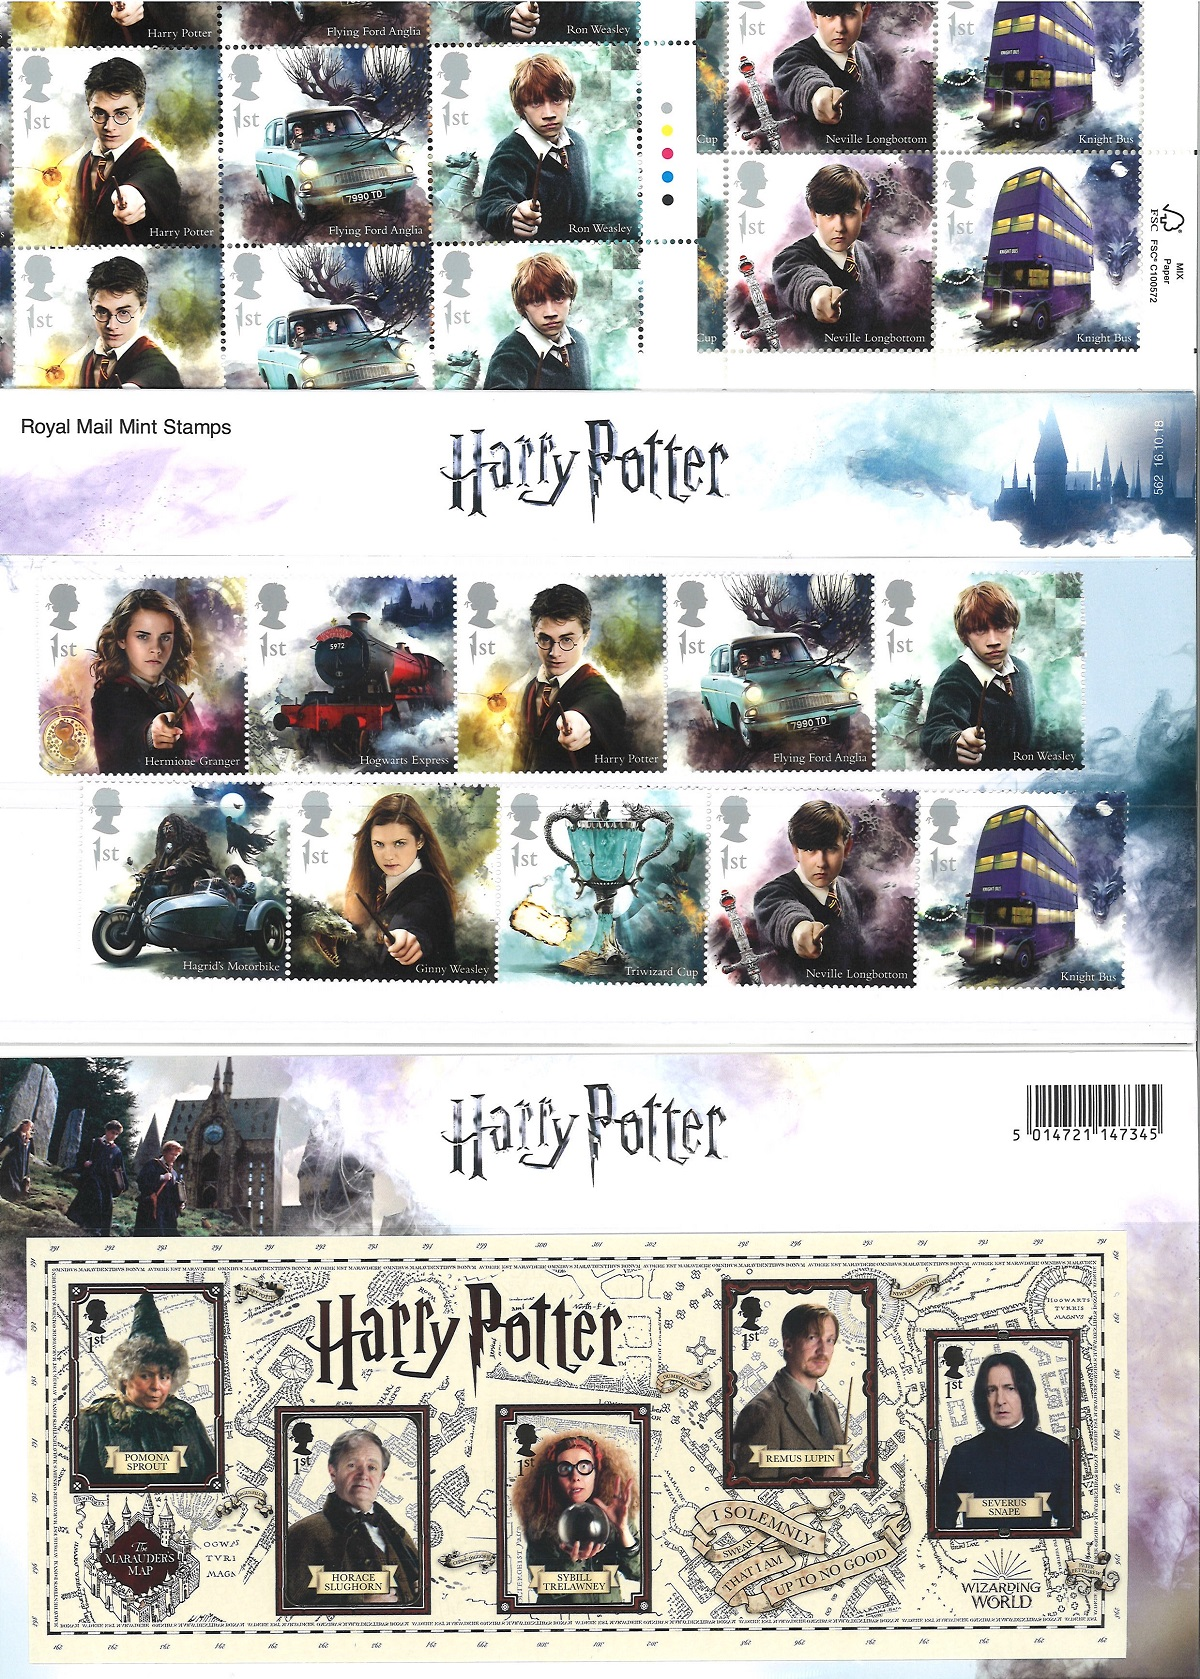 Harry Potter collection of stamp sheets and presentation packs. A total of 65 stamps well-